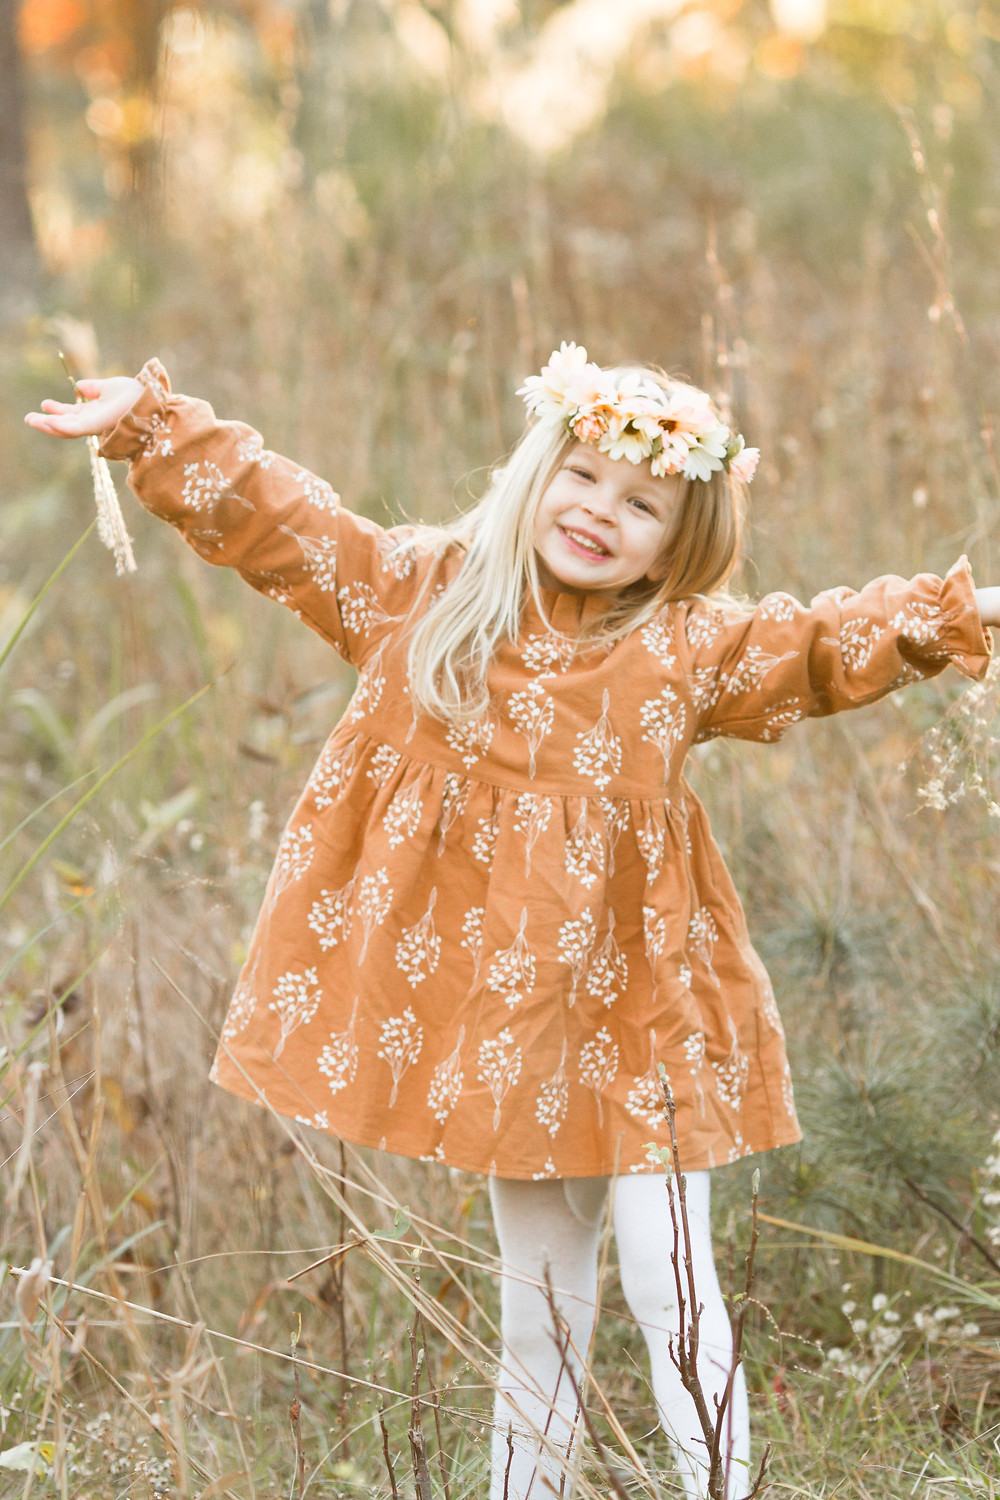 Little girl dances in a grassy field, London Adelaide family photography, Asheville family photographers, tips for planning family photos, lifestyle blog